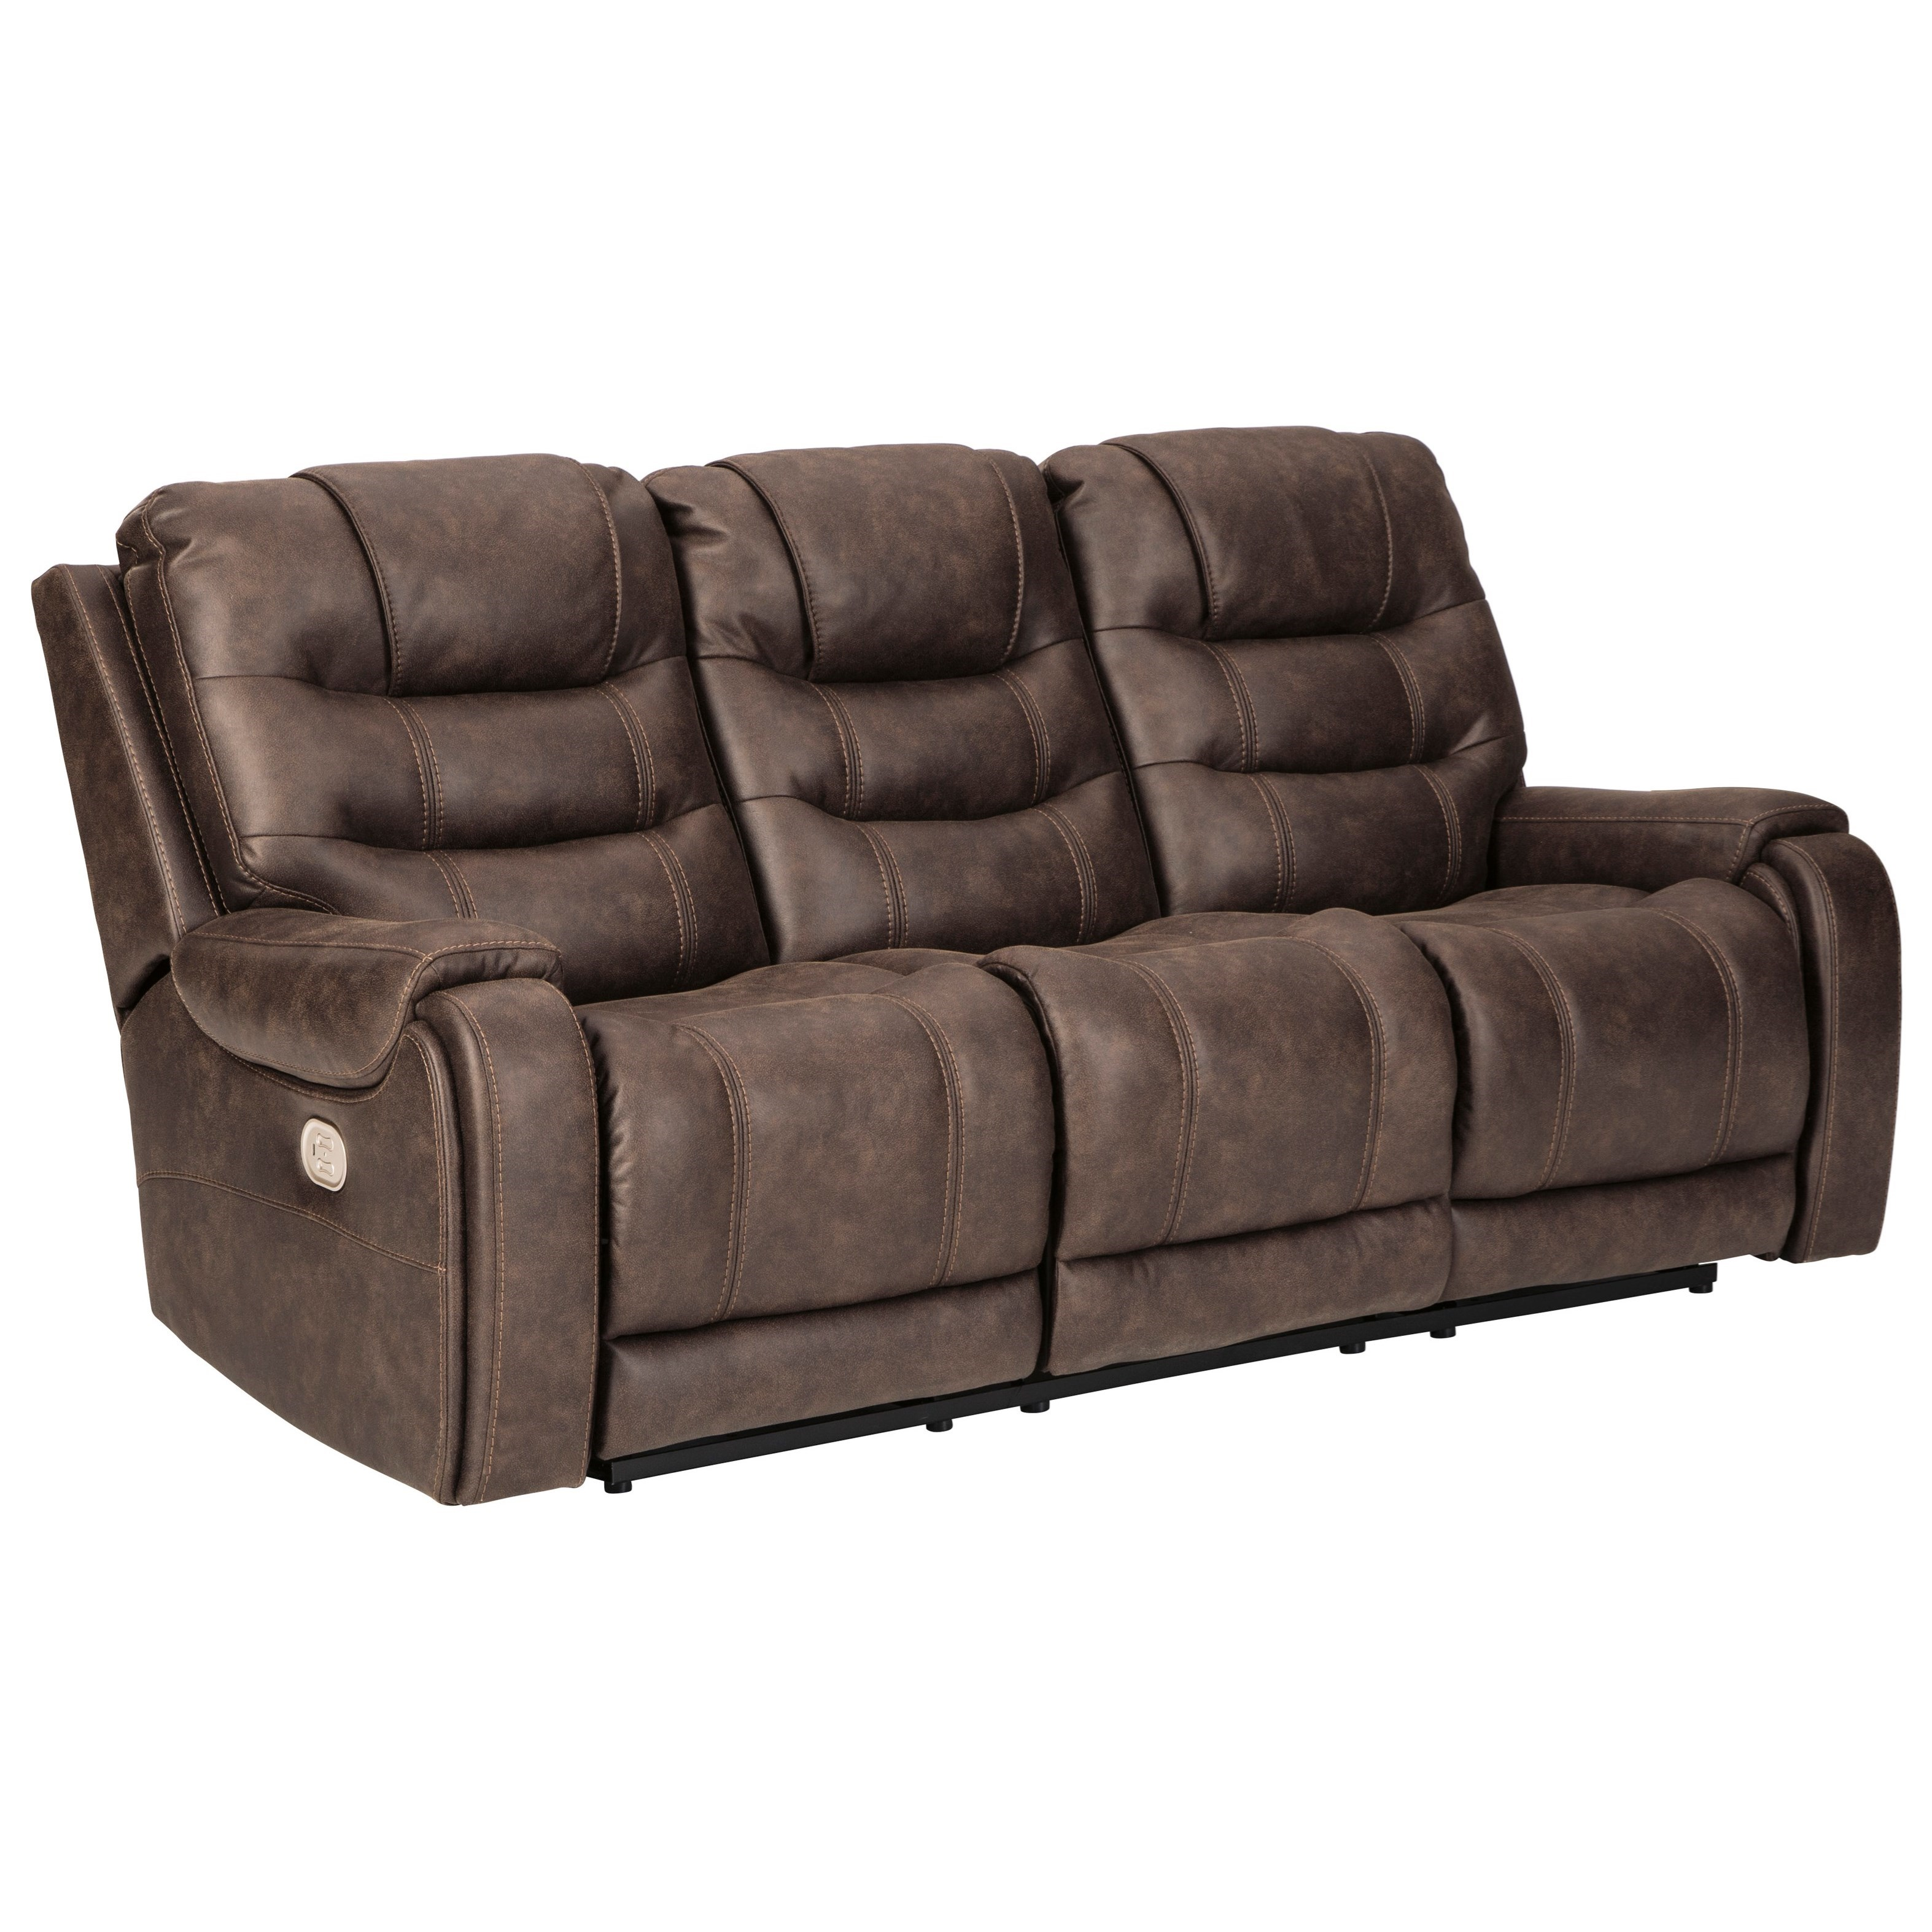 Yacolt Power Reclining Sofa by Signature Design by Ashley at Value City Furniture